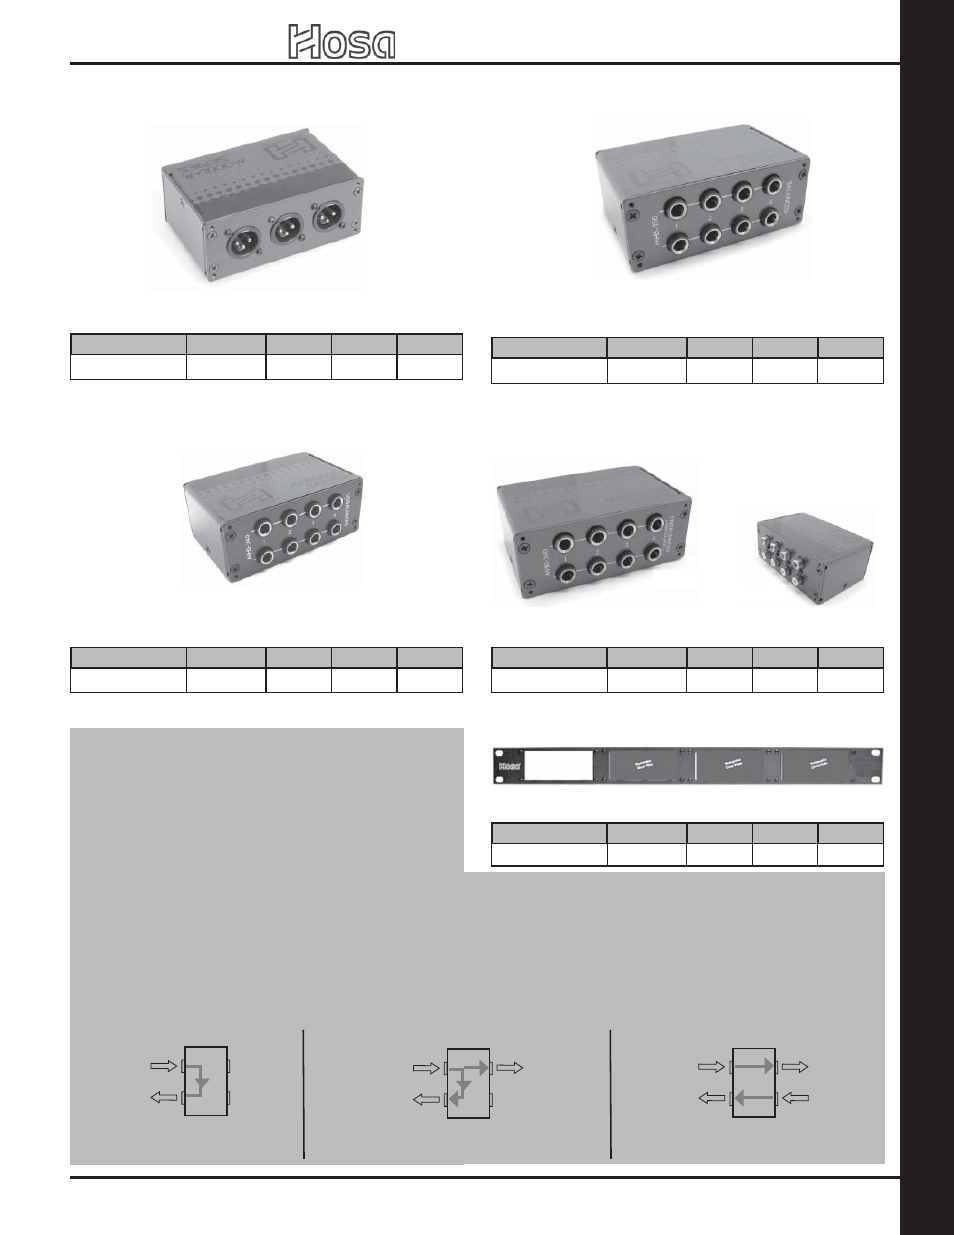 Pat Ch Bays 2007 Retail Catalog Modular Unbalanced 1 4 Patch Bay Here Is An Image Of A Series Top And Parallel Bottom Wiring Hosa Technology Audio Digital Solutions User Manual Page 7 72